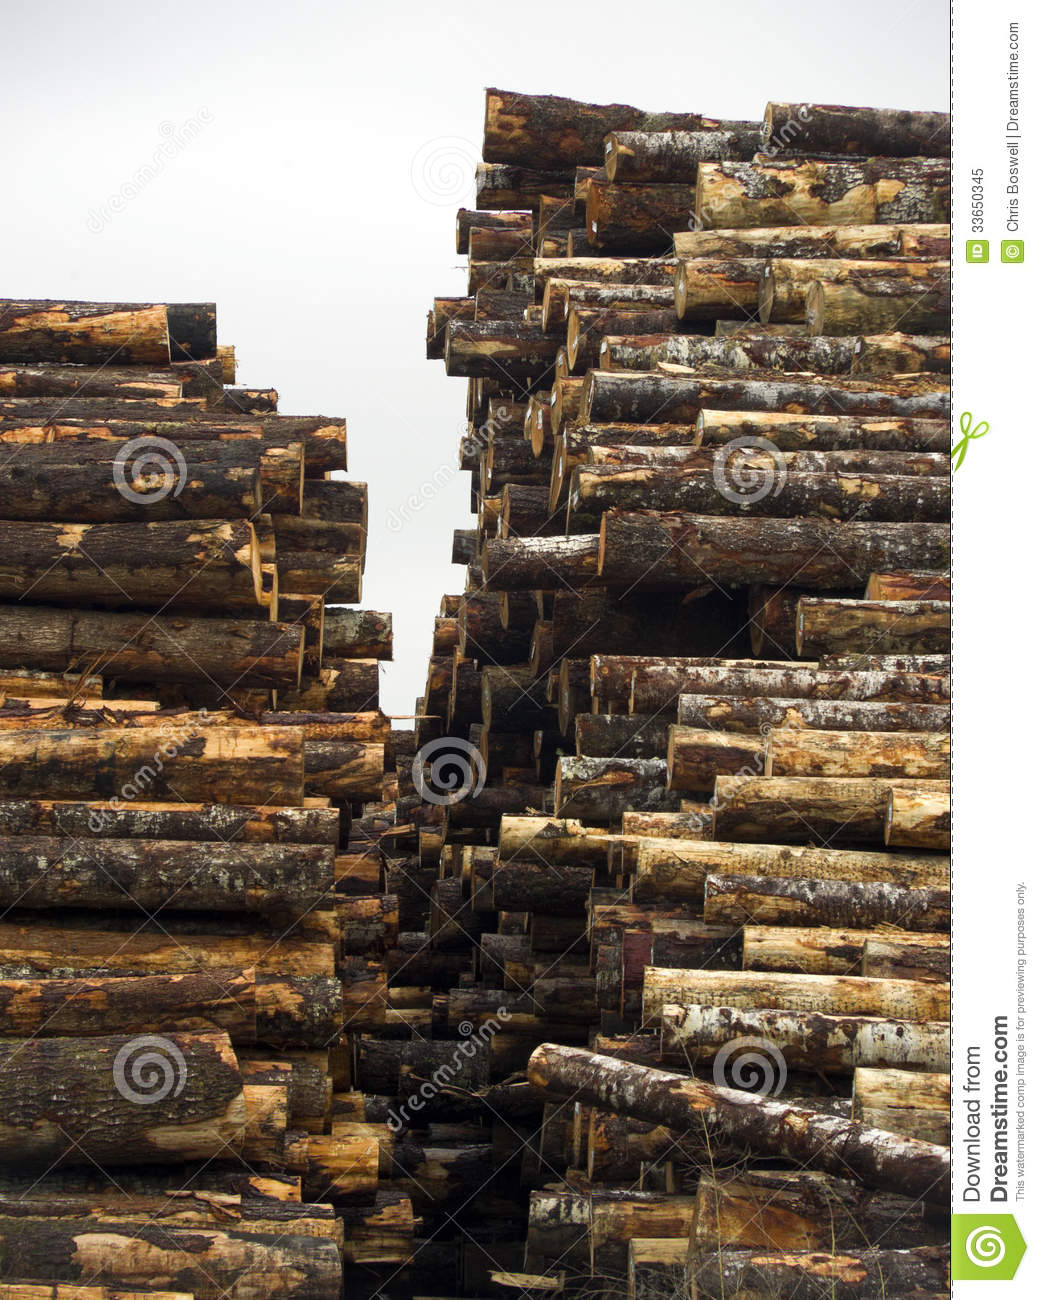 http://thumbs.dreamstime.com/z/tree-log-sections-laying-stacked-lumber-yard-sawmill-wood-storag-wait-processing-33650345.jpg